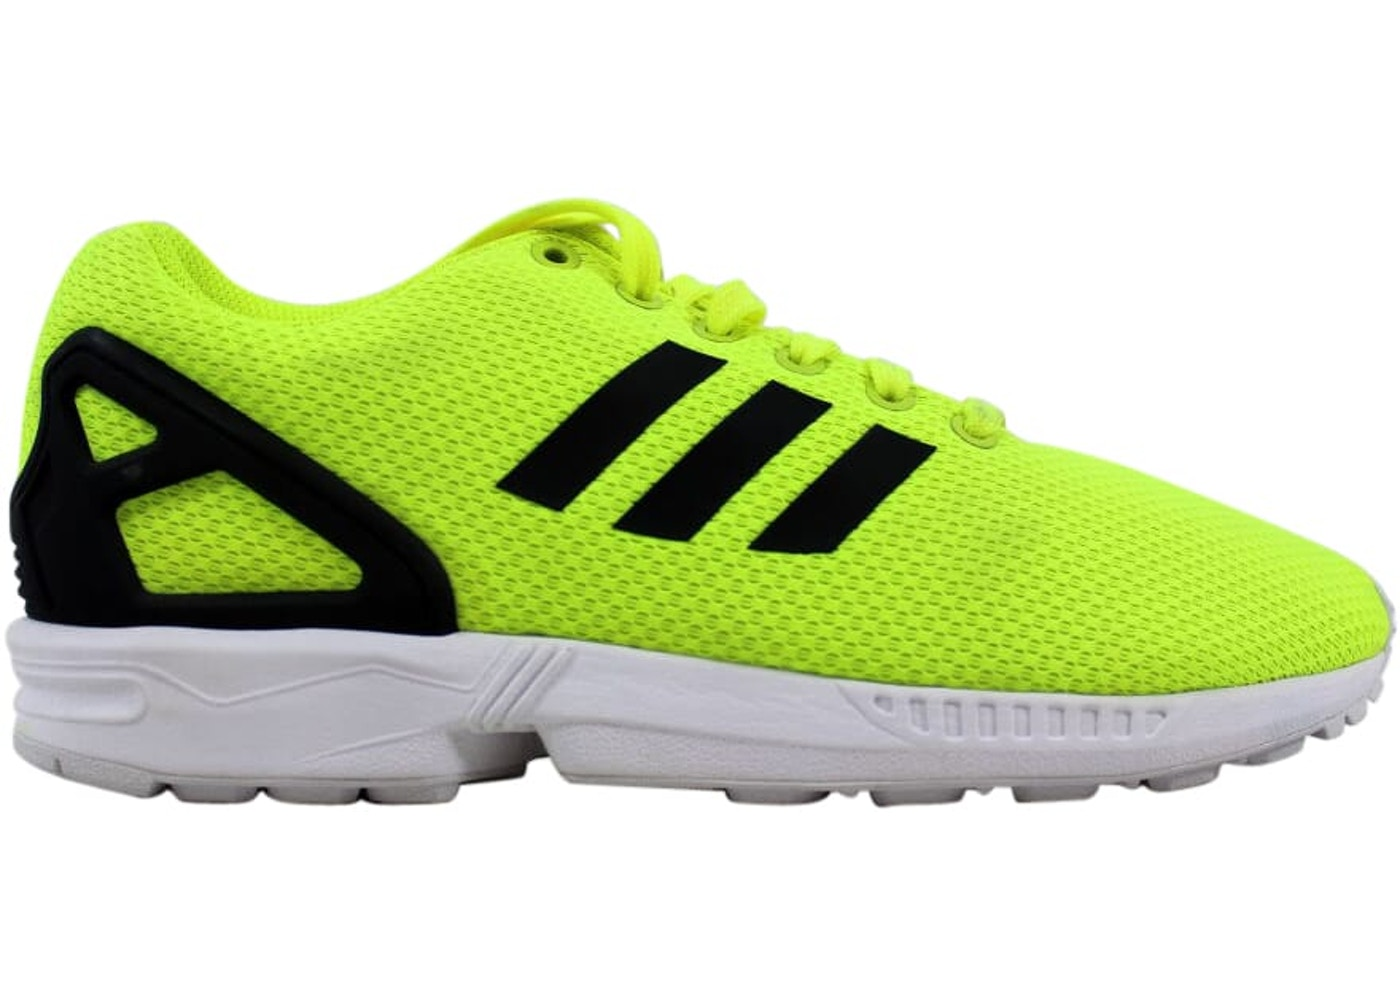 quality design 782be d0fa5 adidas ZX Flux Electric Yellow